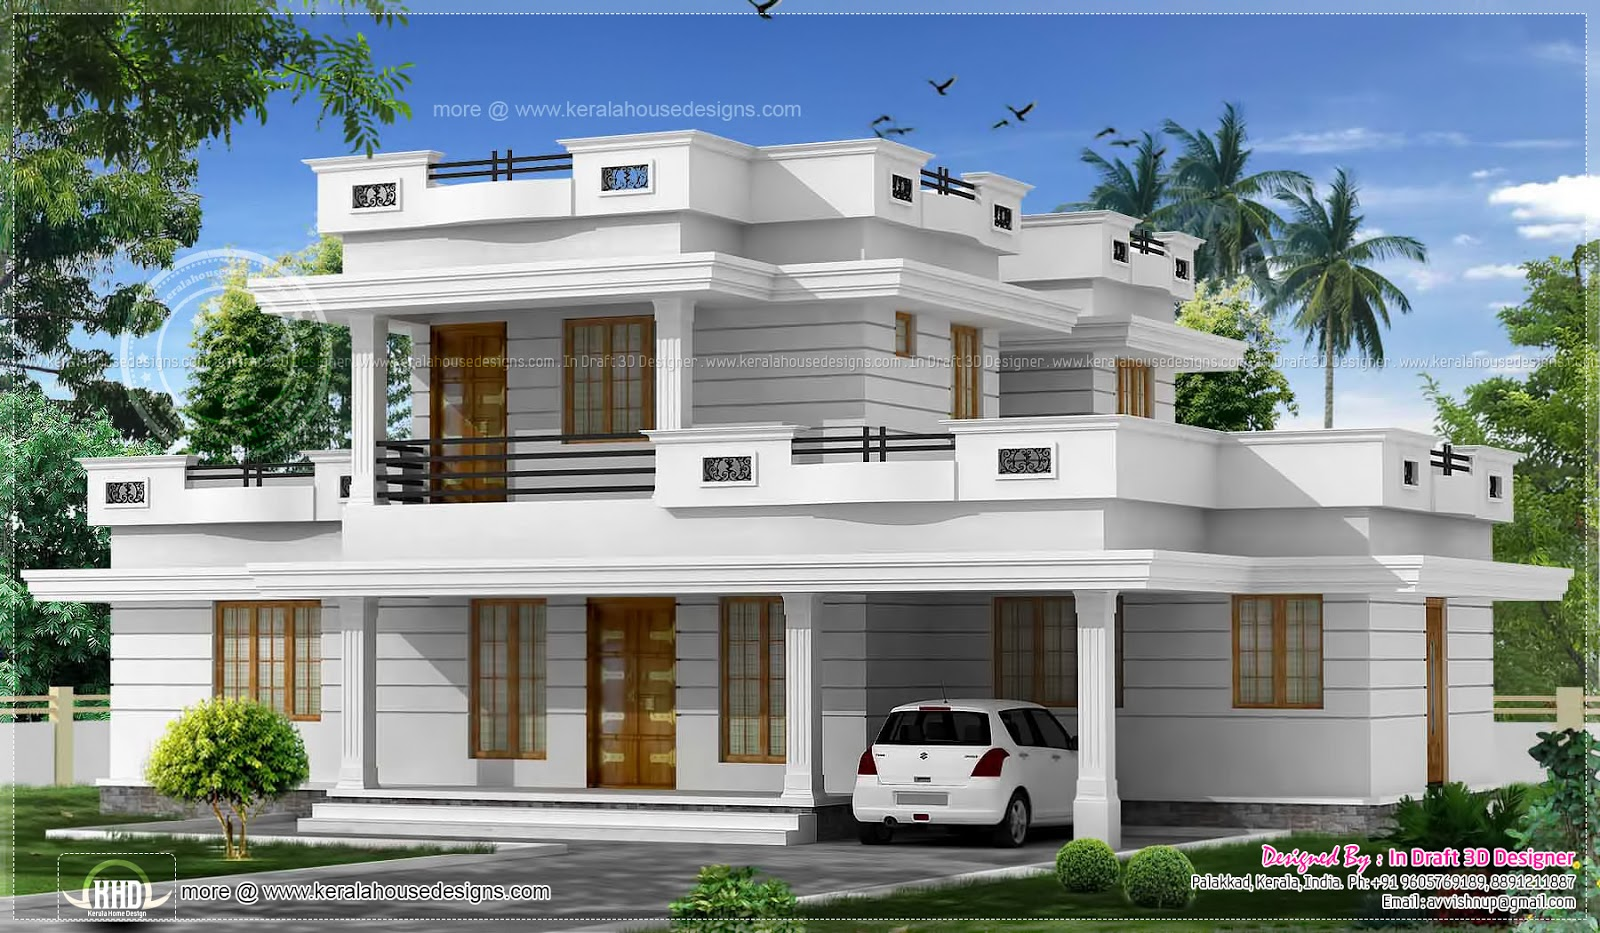 Villa clipart indian house Plans House Villa Homekeralaplans 3D